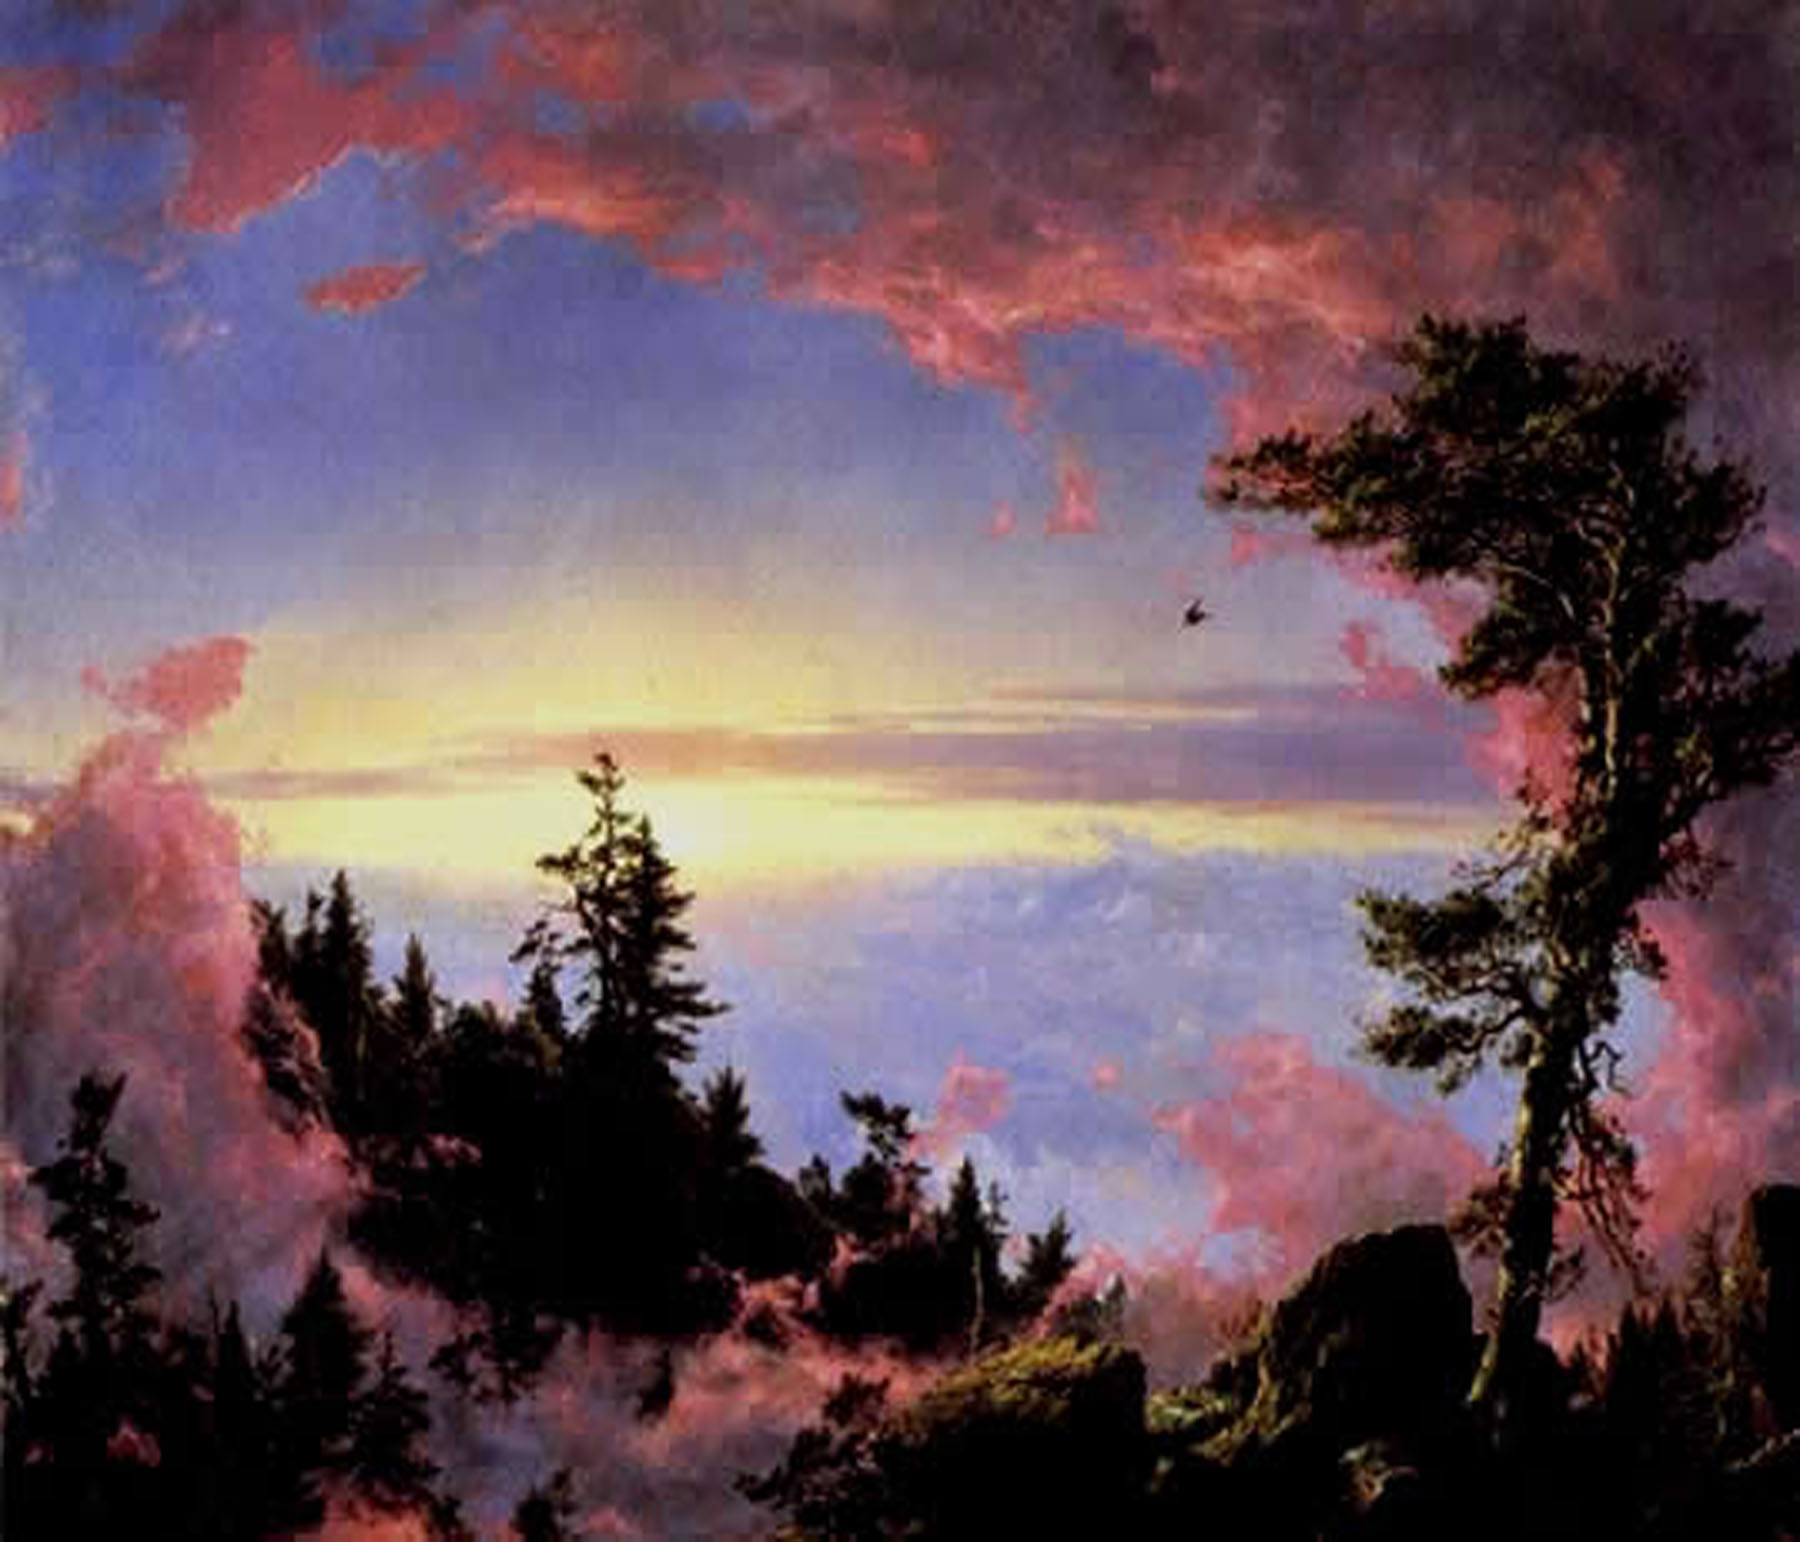 Above the clouds at sunrise. Painting by Frederic Edwin Church, a leading painter in the Hudson River School